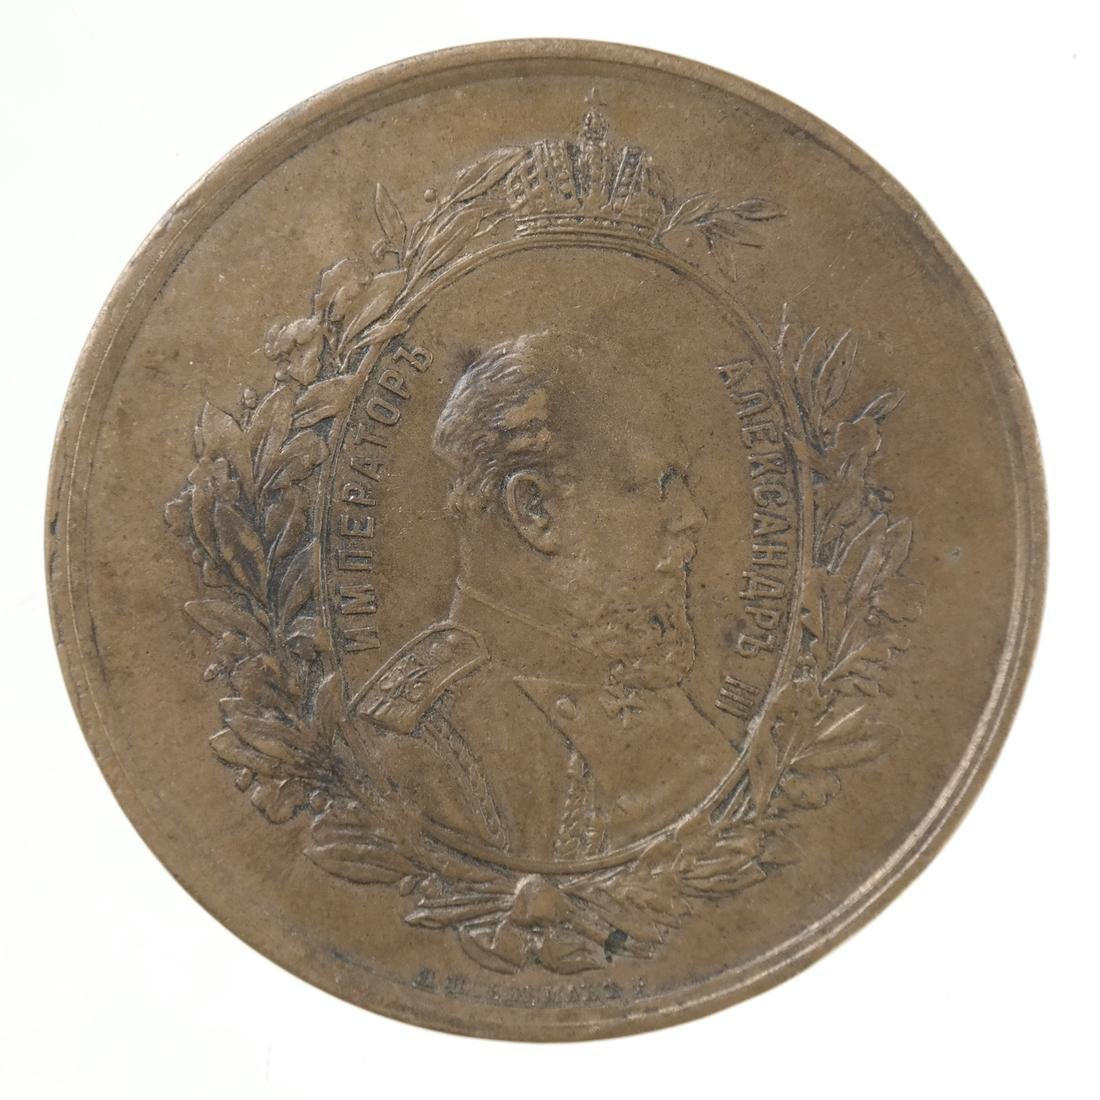 RUSSIA. MOSCOW ALL-RUSSIAN EXPOSITION MEDAL, 1882.